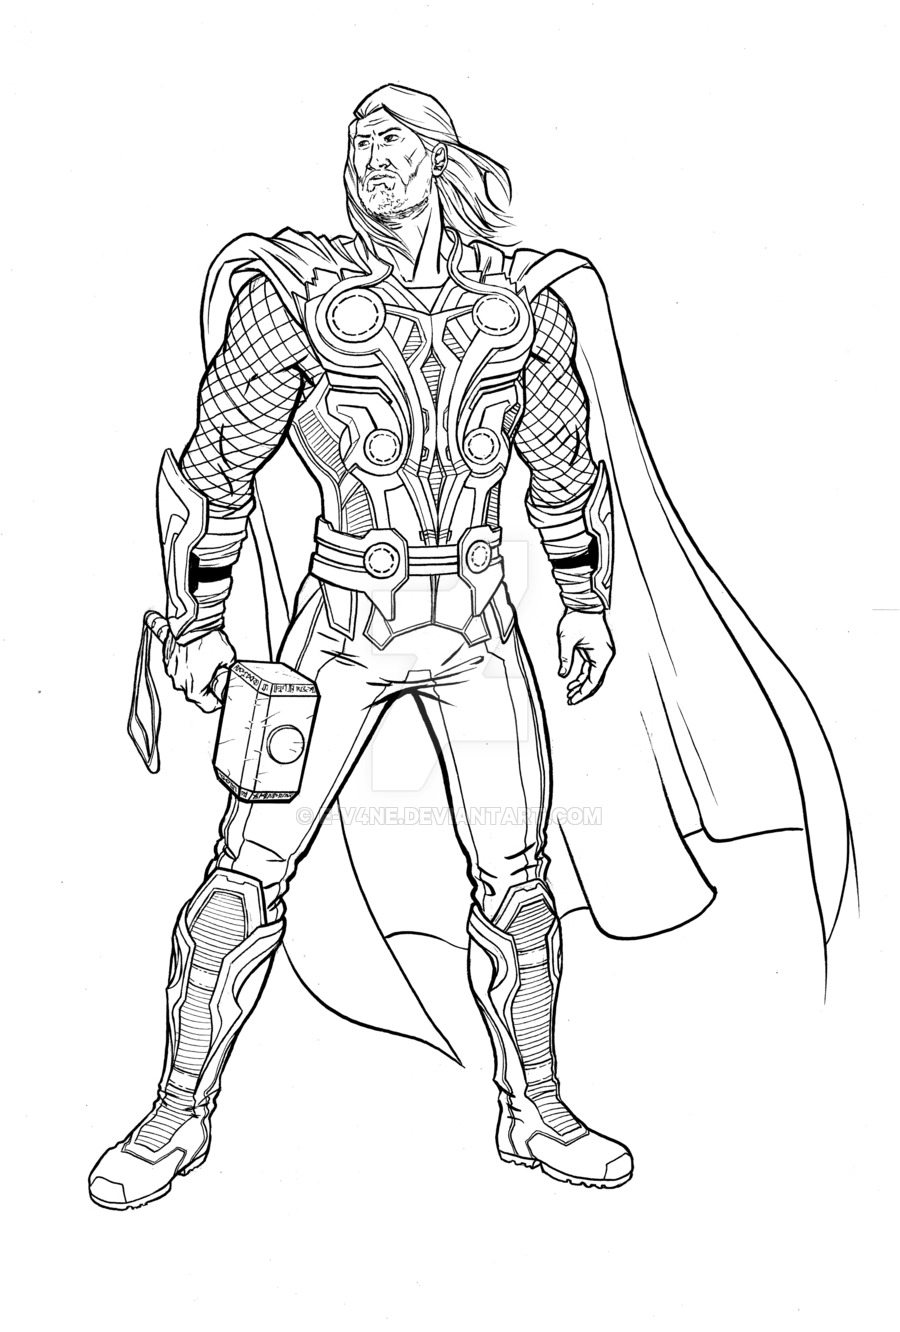 Thor Avengers Drawing at GetDrawings.com | Free for personal use ...